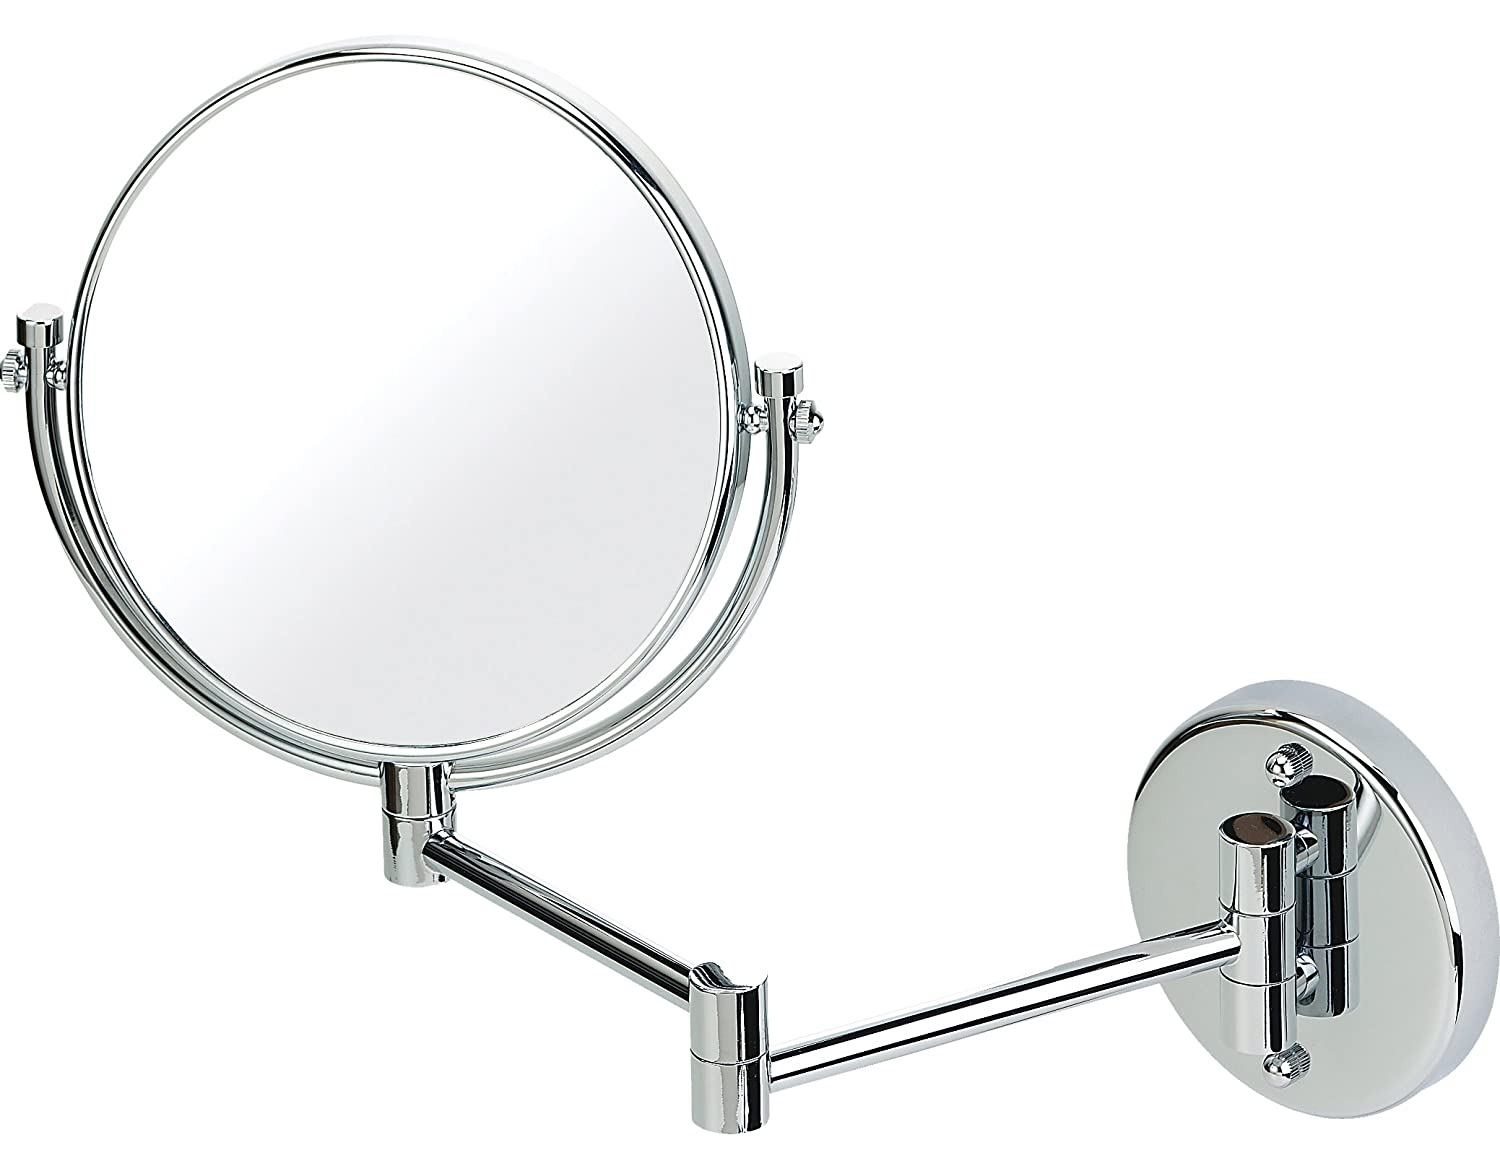 Chrome extending shaving wall mounted mirror true image x3 chrome extending shaving wall mounted mirror true image x3 magnified extends to 35cm 20cm amazon beauty amipublicfo Gallery